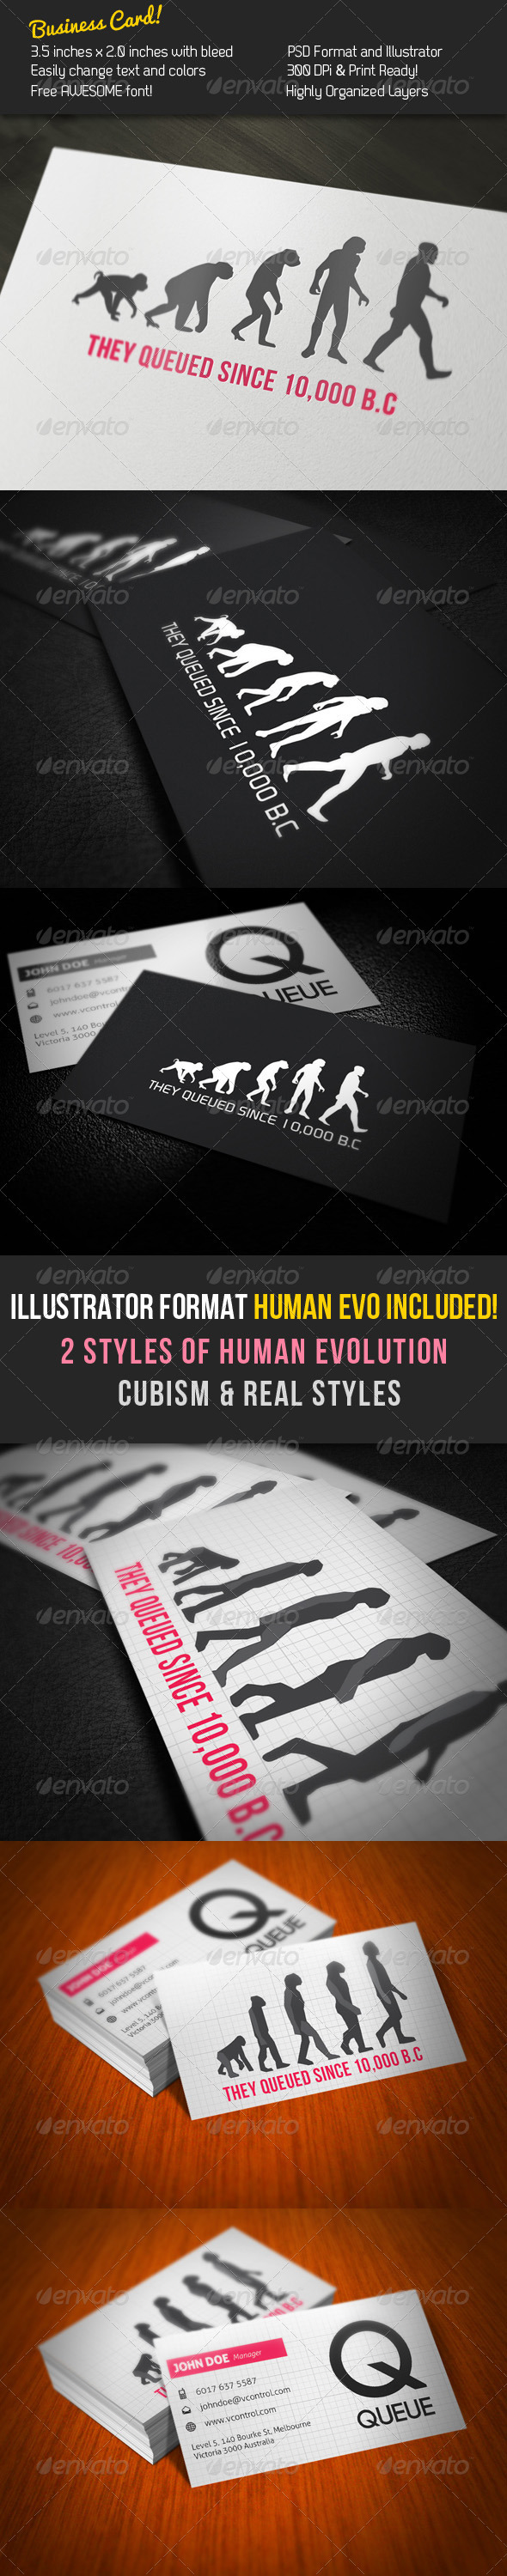 Queue Business Card - Creative Business Cards